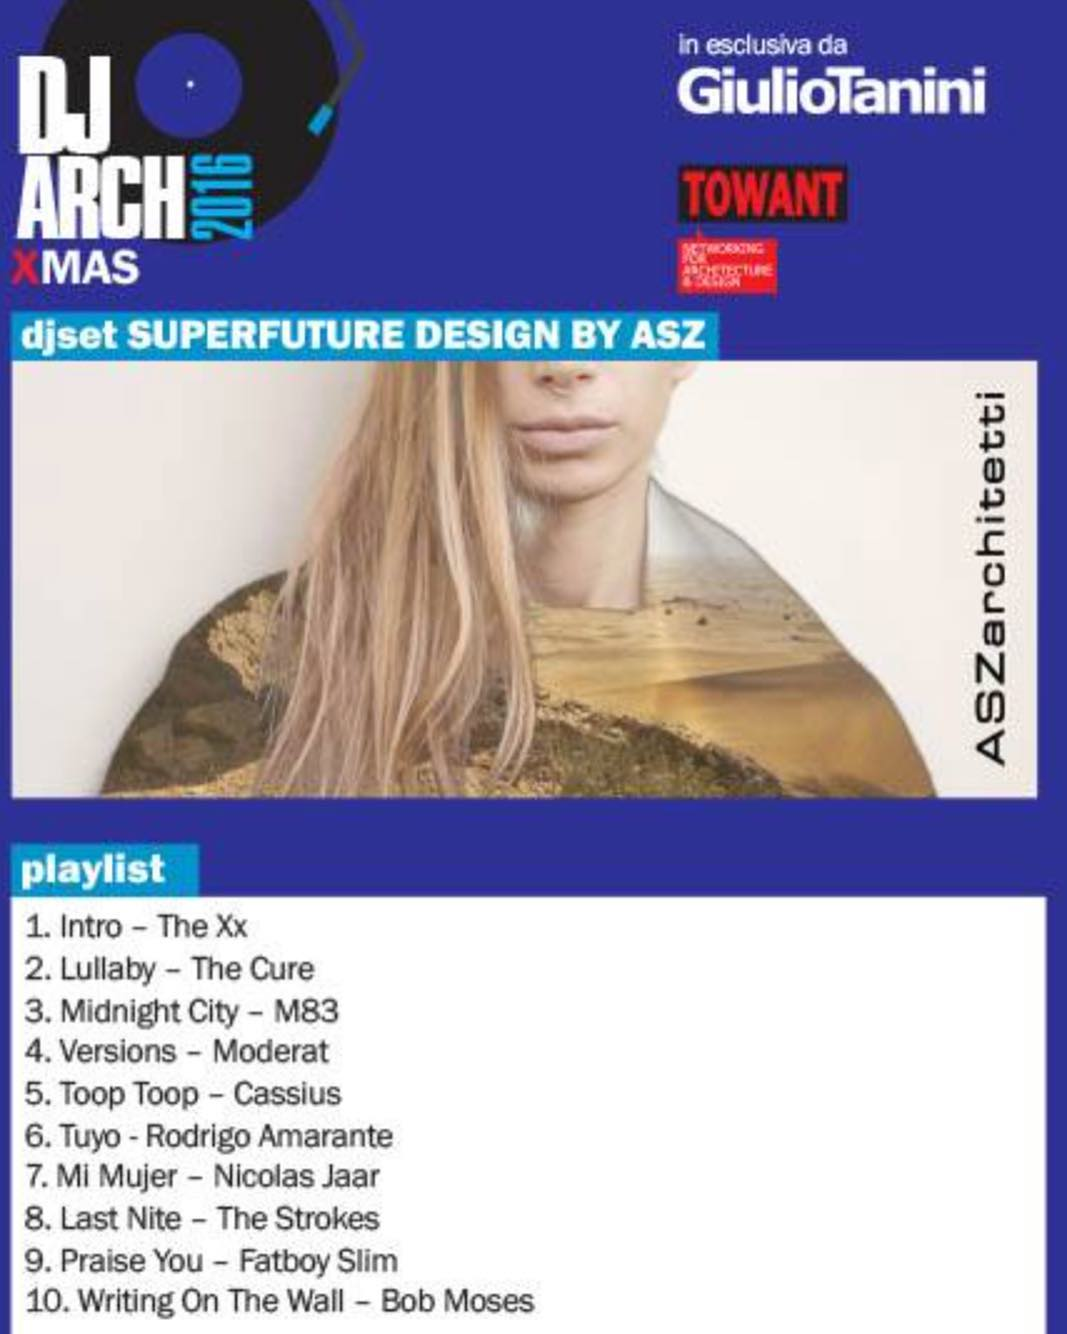 If you like our playlist please #voteforus link in bio. A big thank to @towant for the crazy night yesterday. DJARCH XMAS #djarch #djarchxmas #towant #architectsparty #superfuturedesign #aszarchitetti